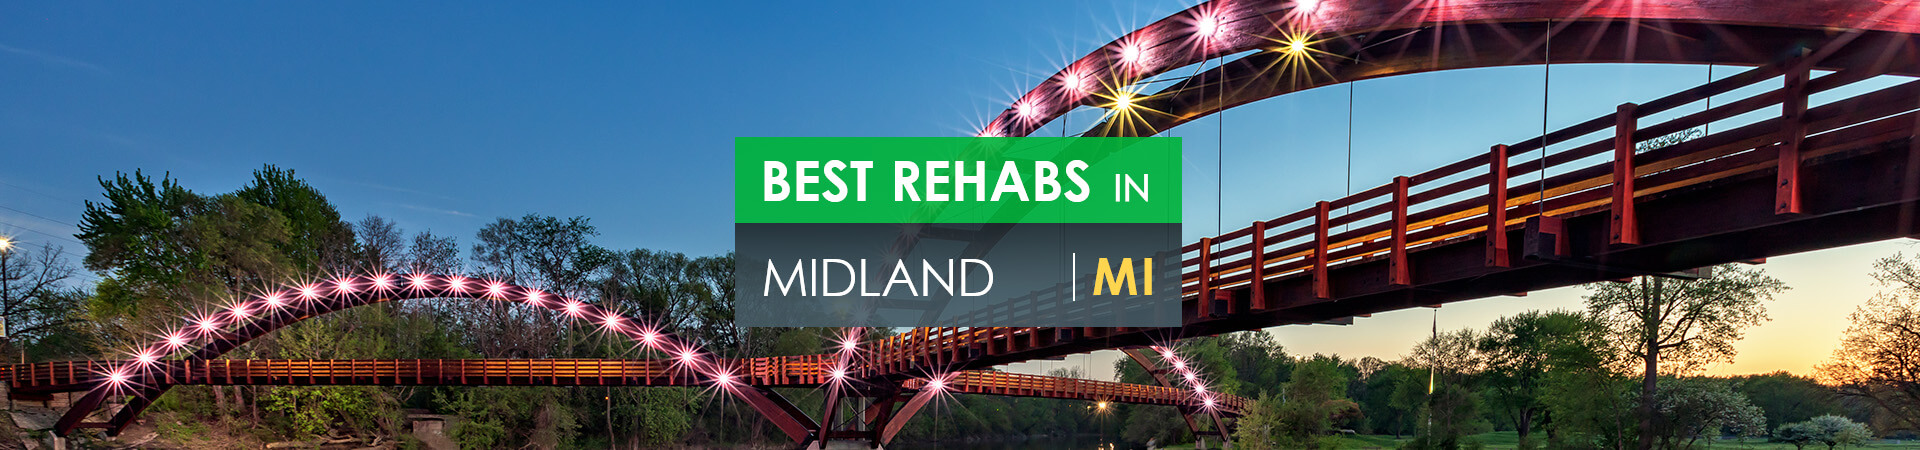 Best rehabs in Midland, MI